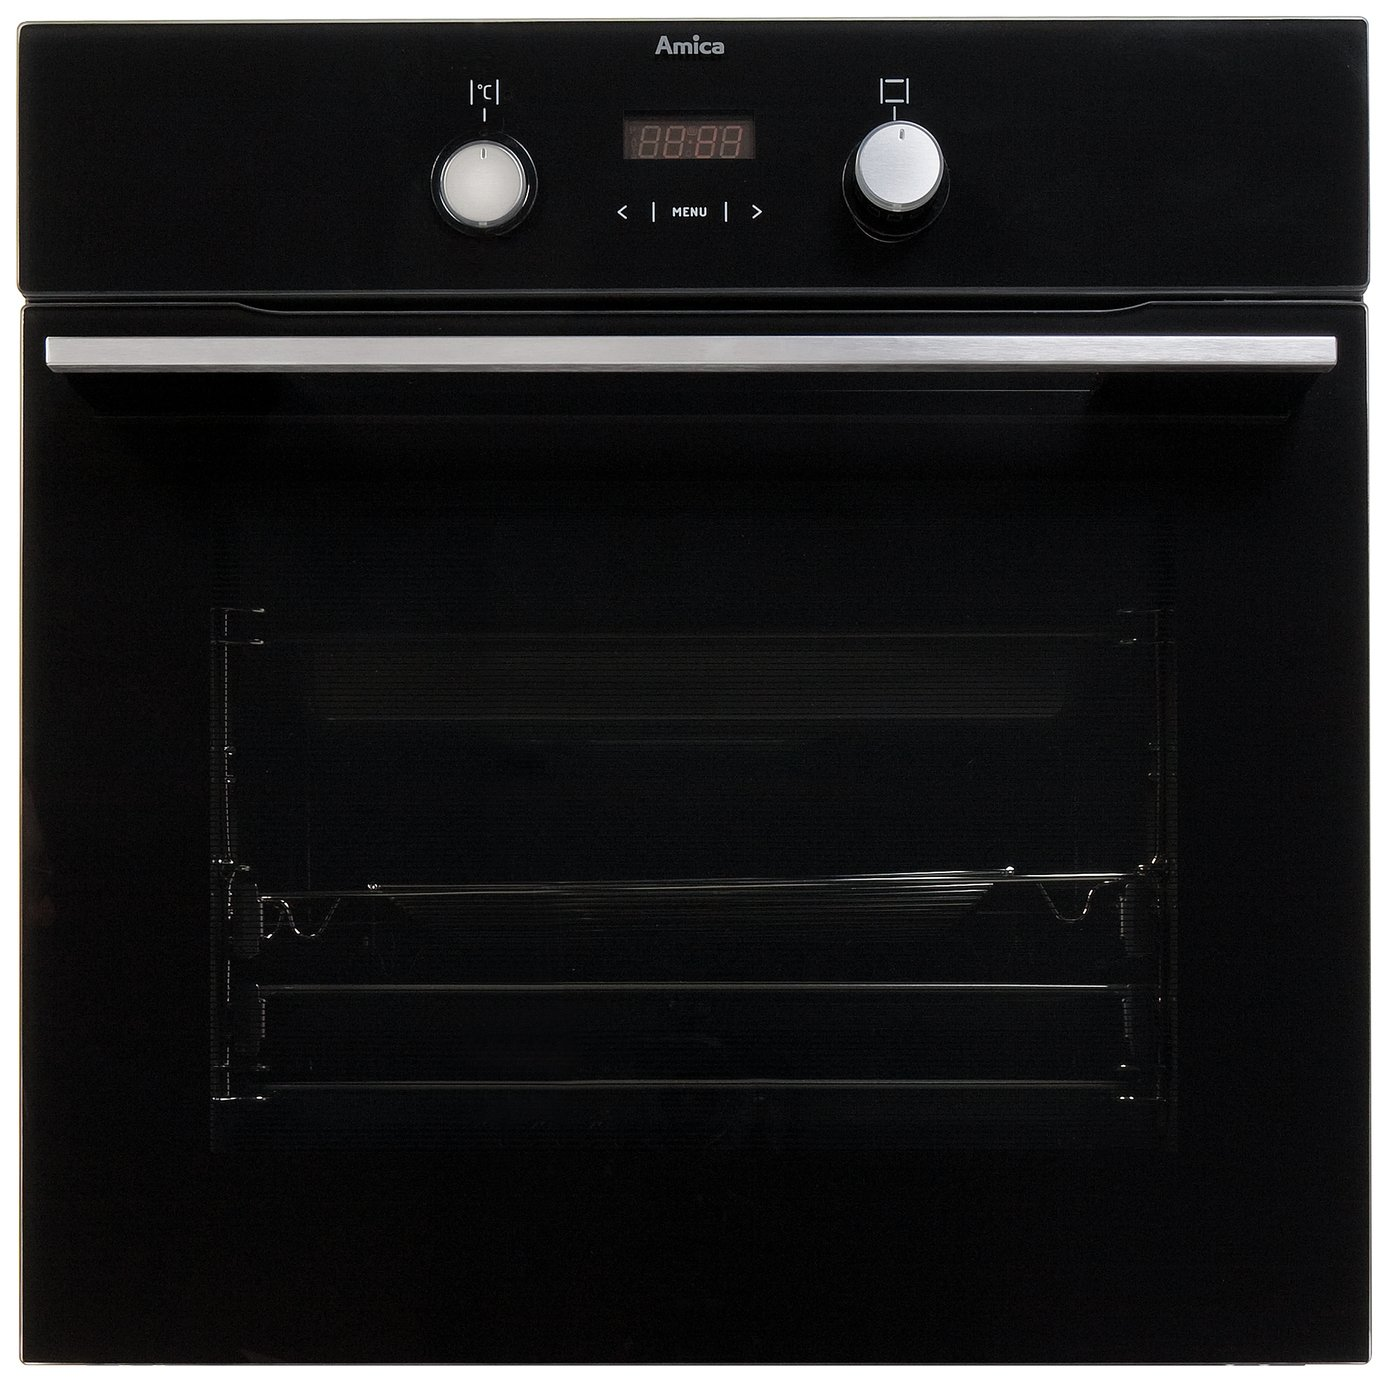 Image of Amica 11433TSB Built-In Oven - Black.